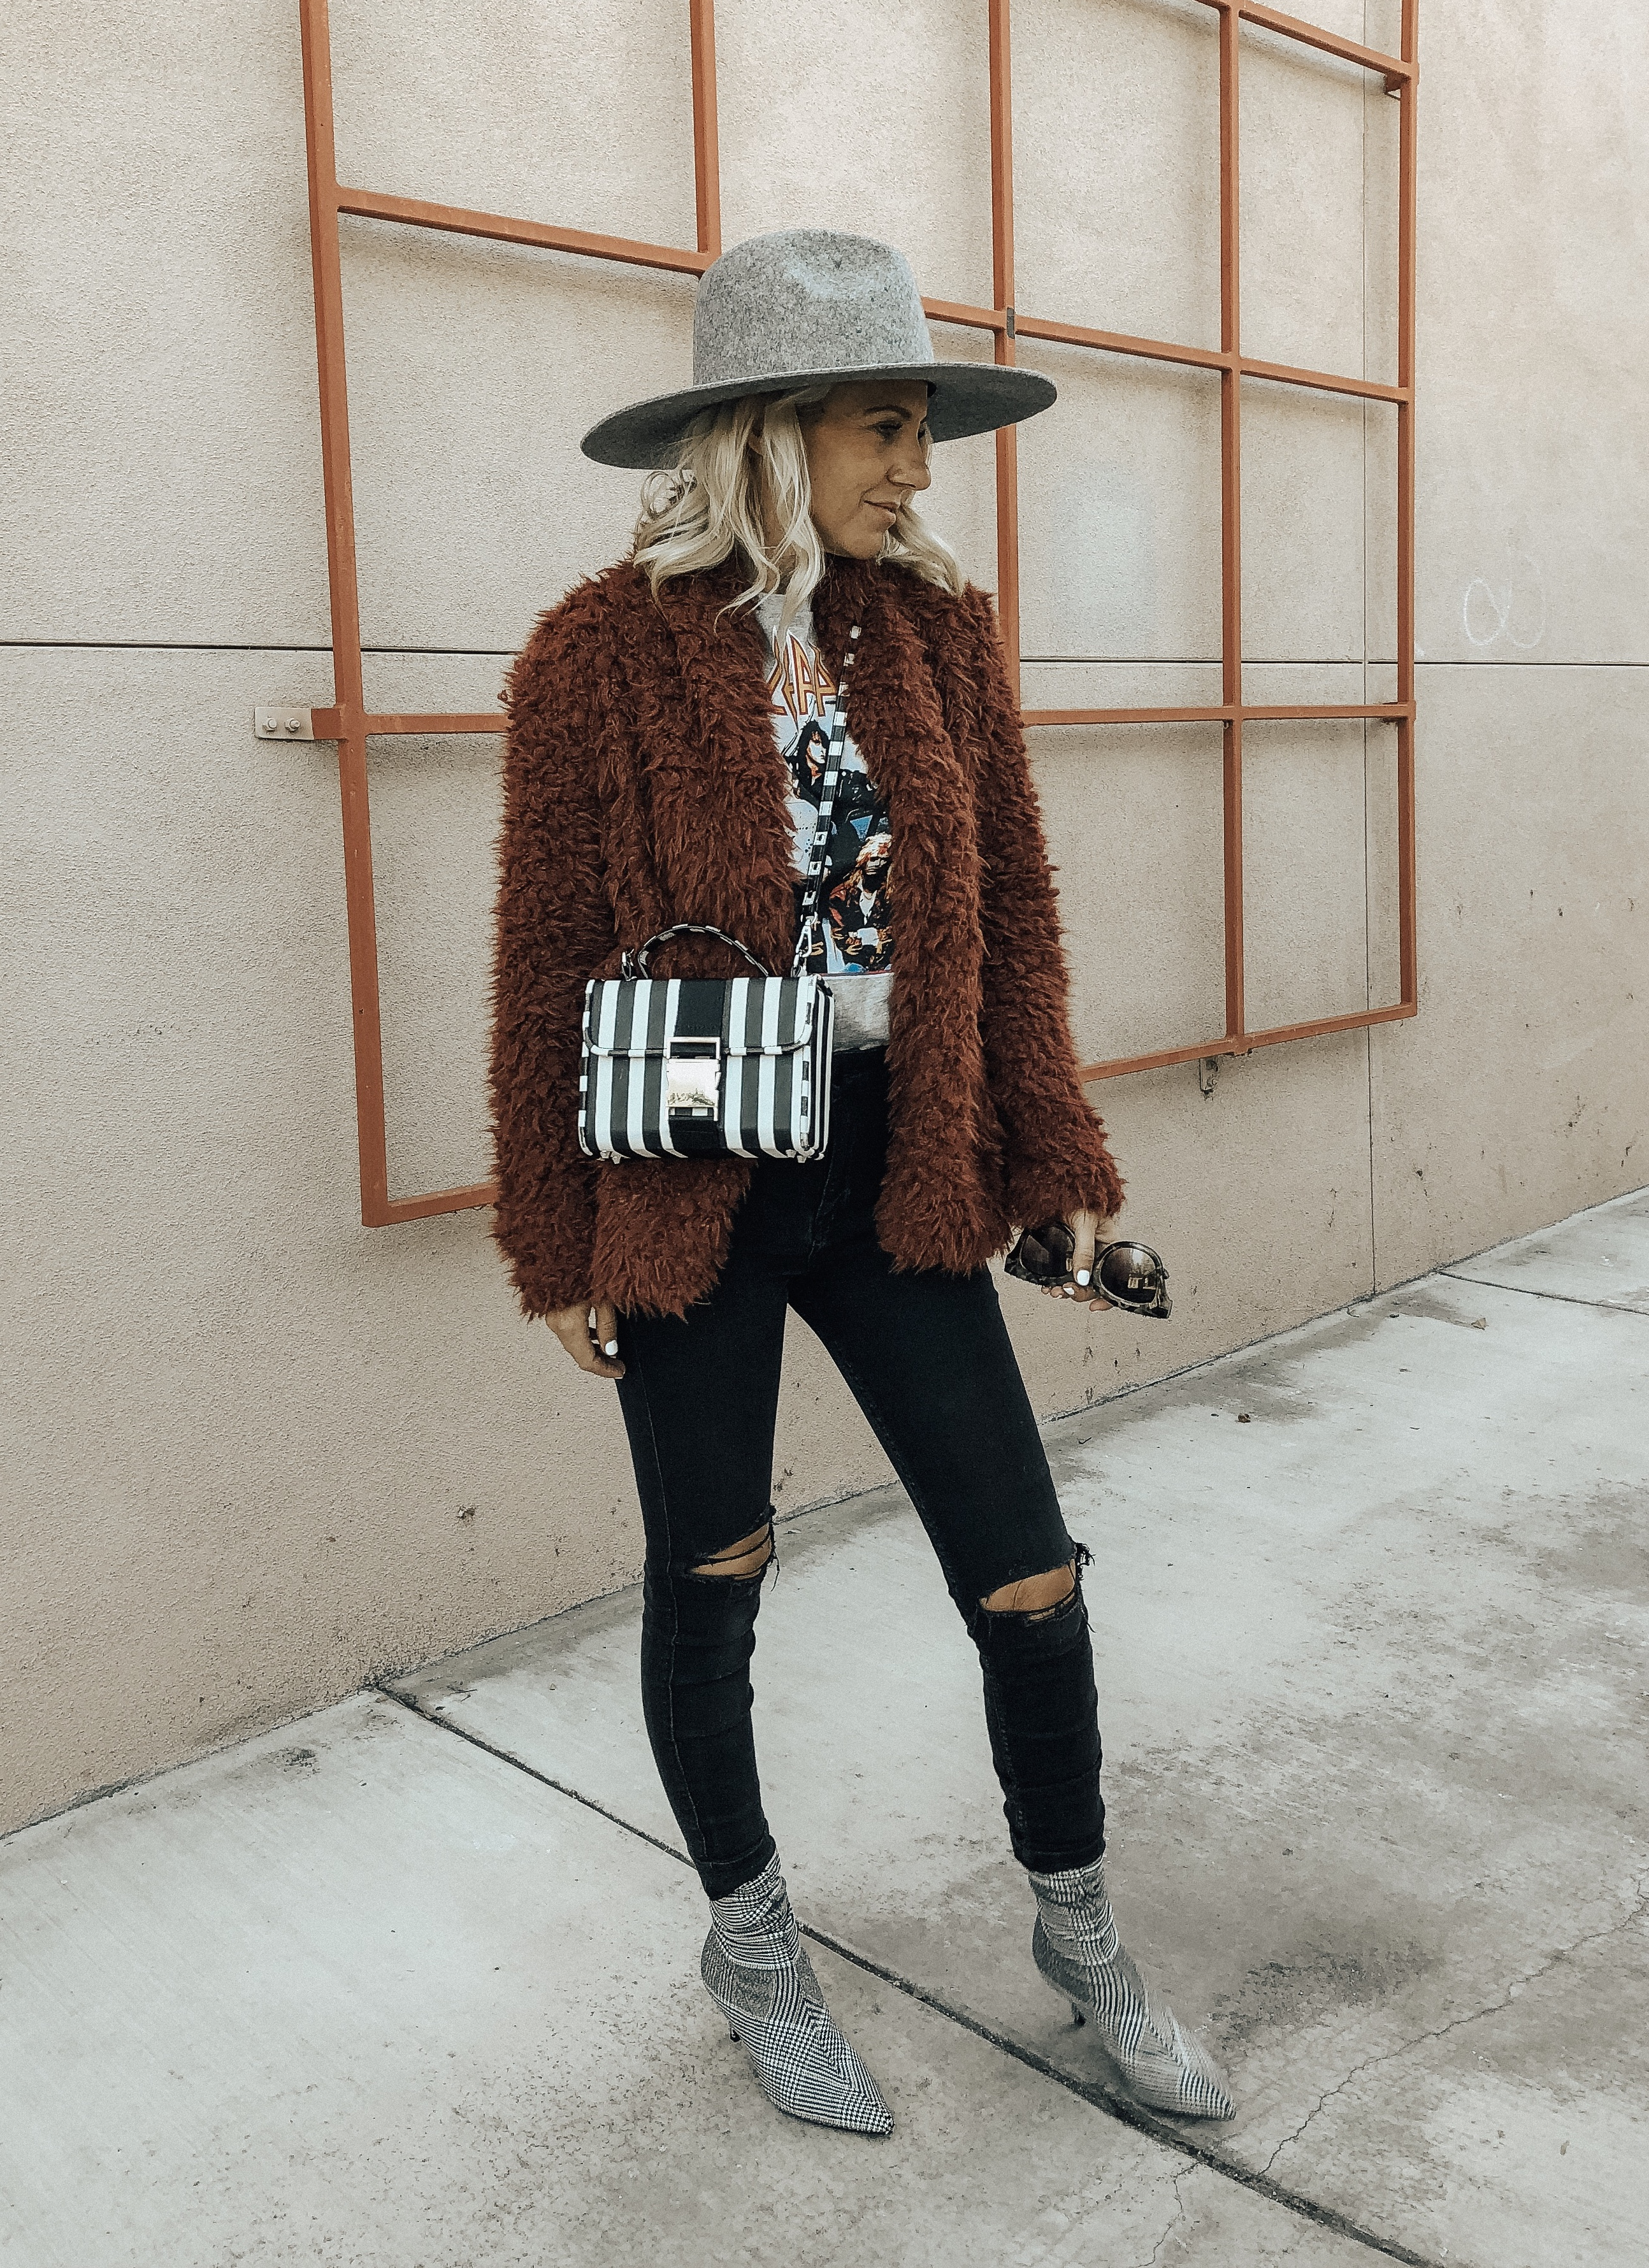 MAD FOR PLAID- Jaclyn De Leon Style + fall fashion + faux fur jacket + street style + style inspo + led zeplin band tee + plaid sock booties + winter casual style + 90's fashion + retro style + mom style + nordstrom rack + affordable fashion + distressed skinny jeans + striped handbag + fedora hat